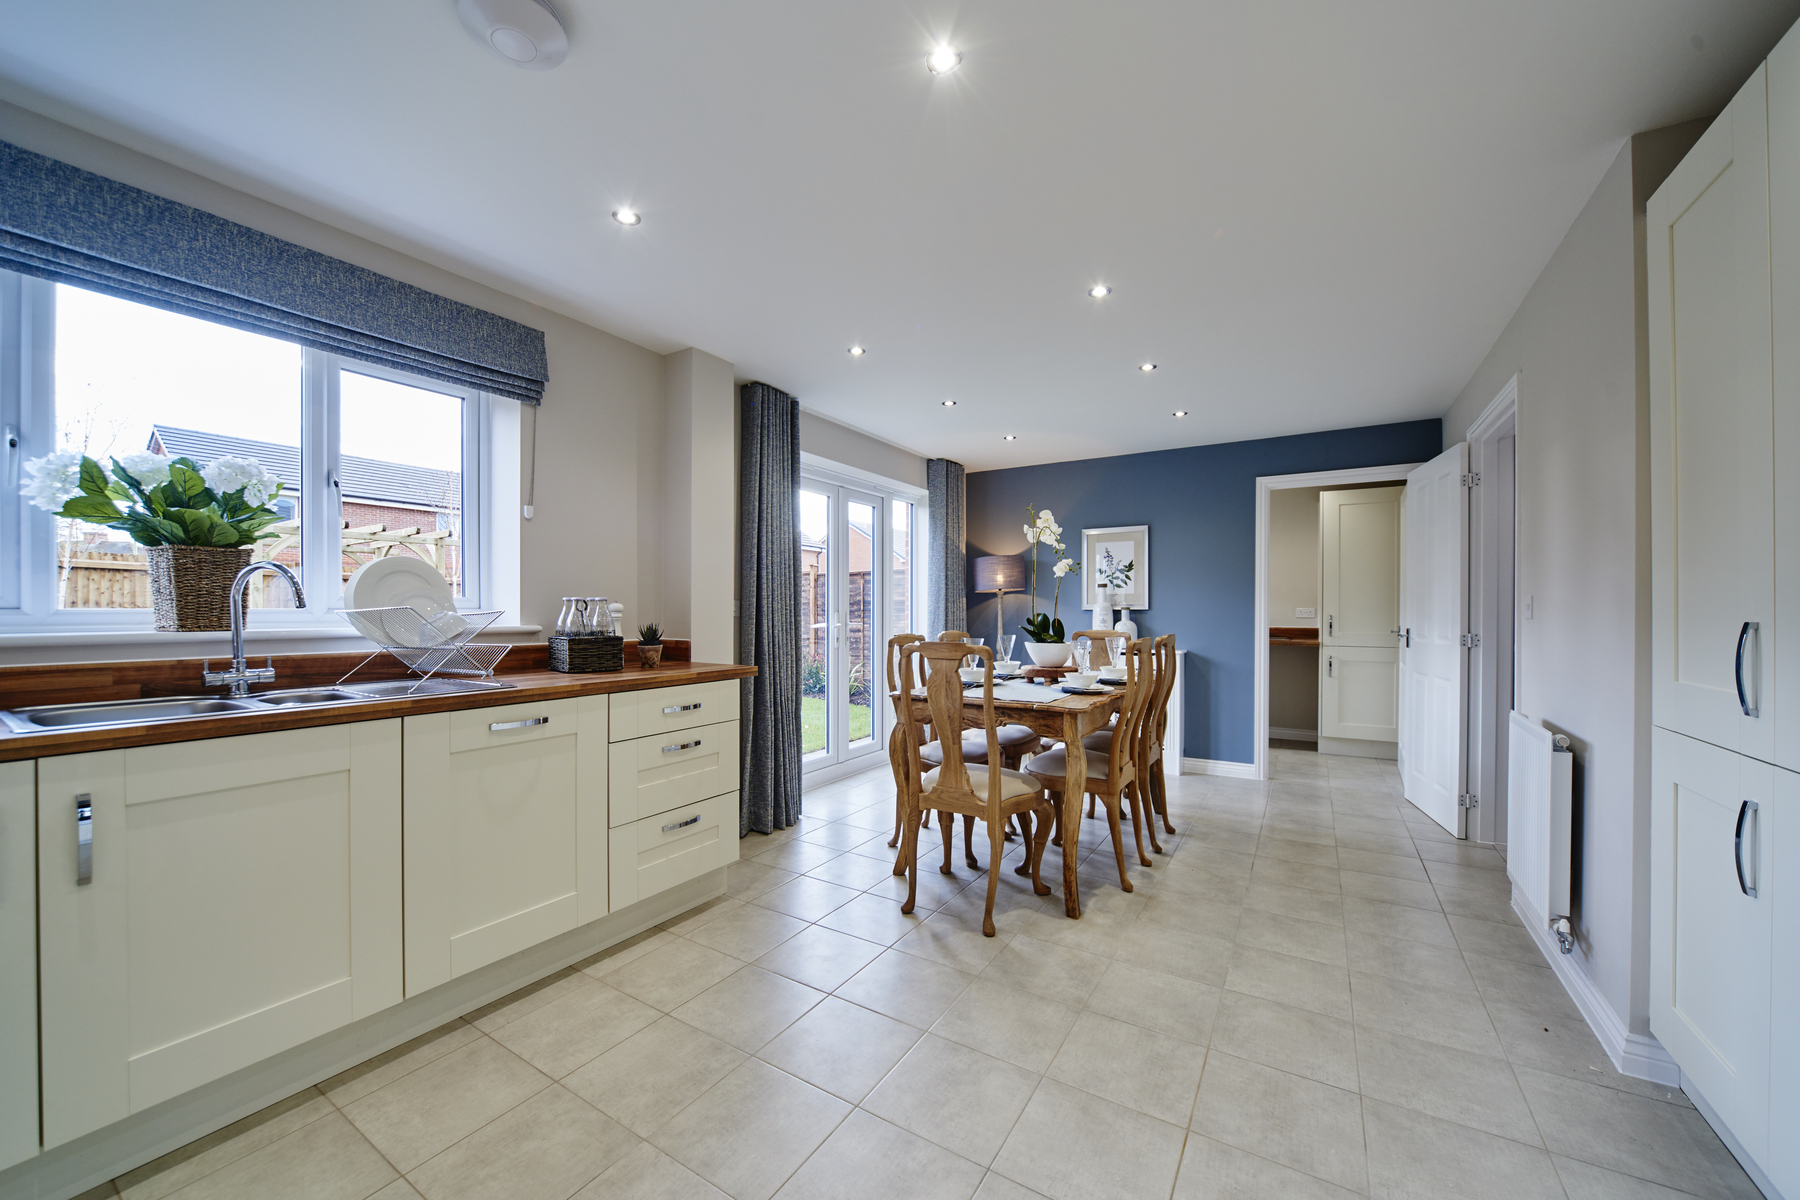 TWM_BurlingtonFields_Shifnal_Haddenham_Showhome_0005